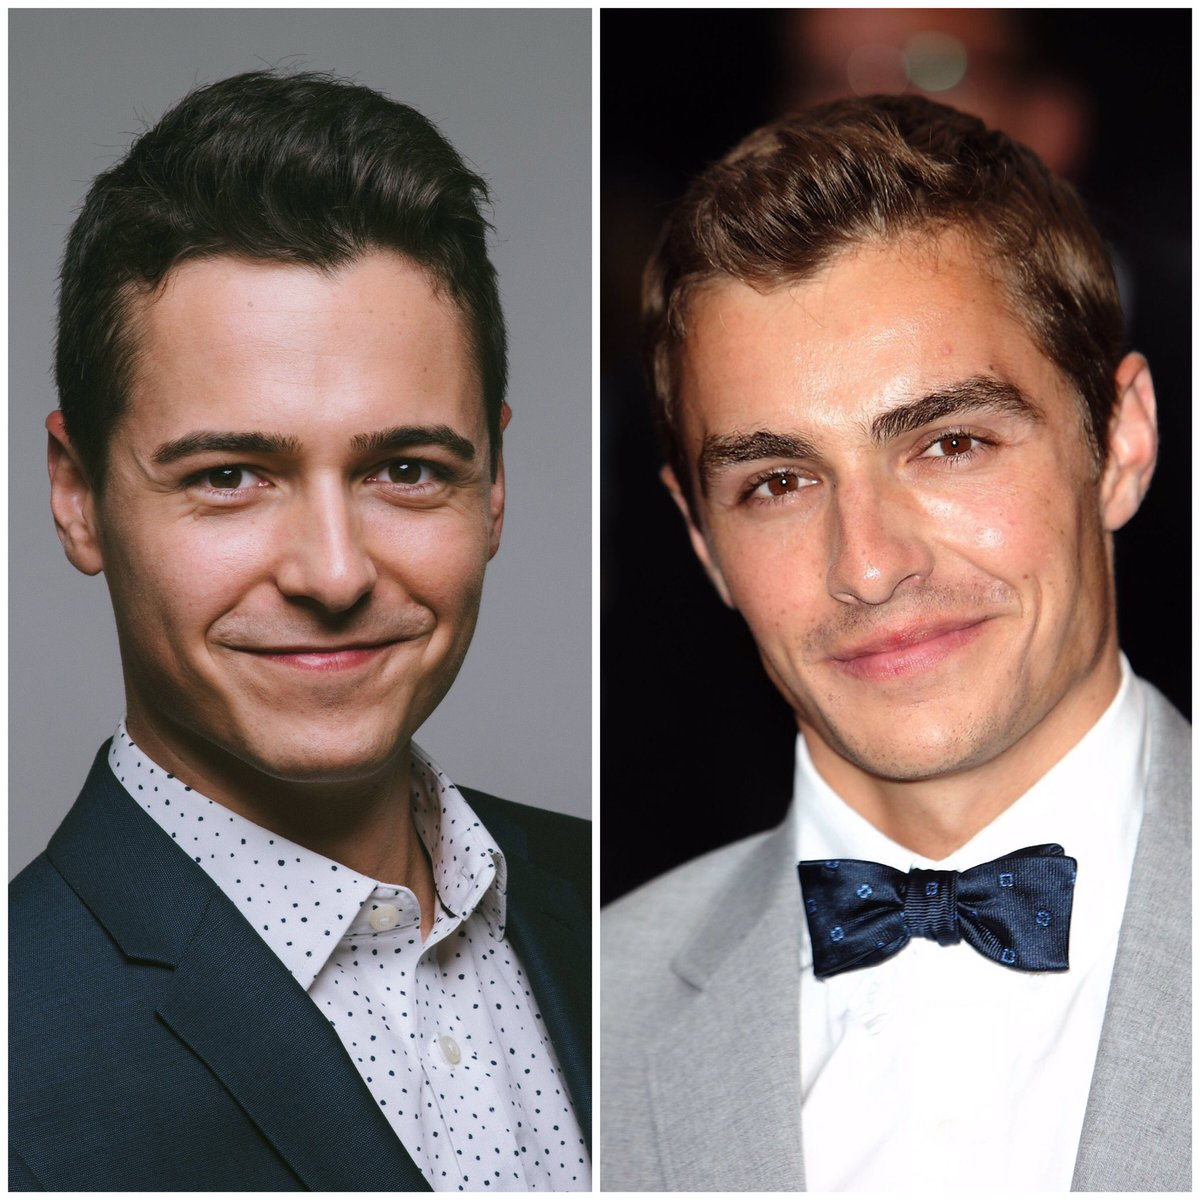 Tanner zipchen on twitter people say dave franco is my twin today tanner zipchen on twitter people say dave franco is my twin today we will meet and maybe even fight to the death there can only be one m4hsunfo